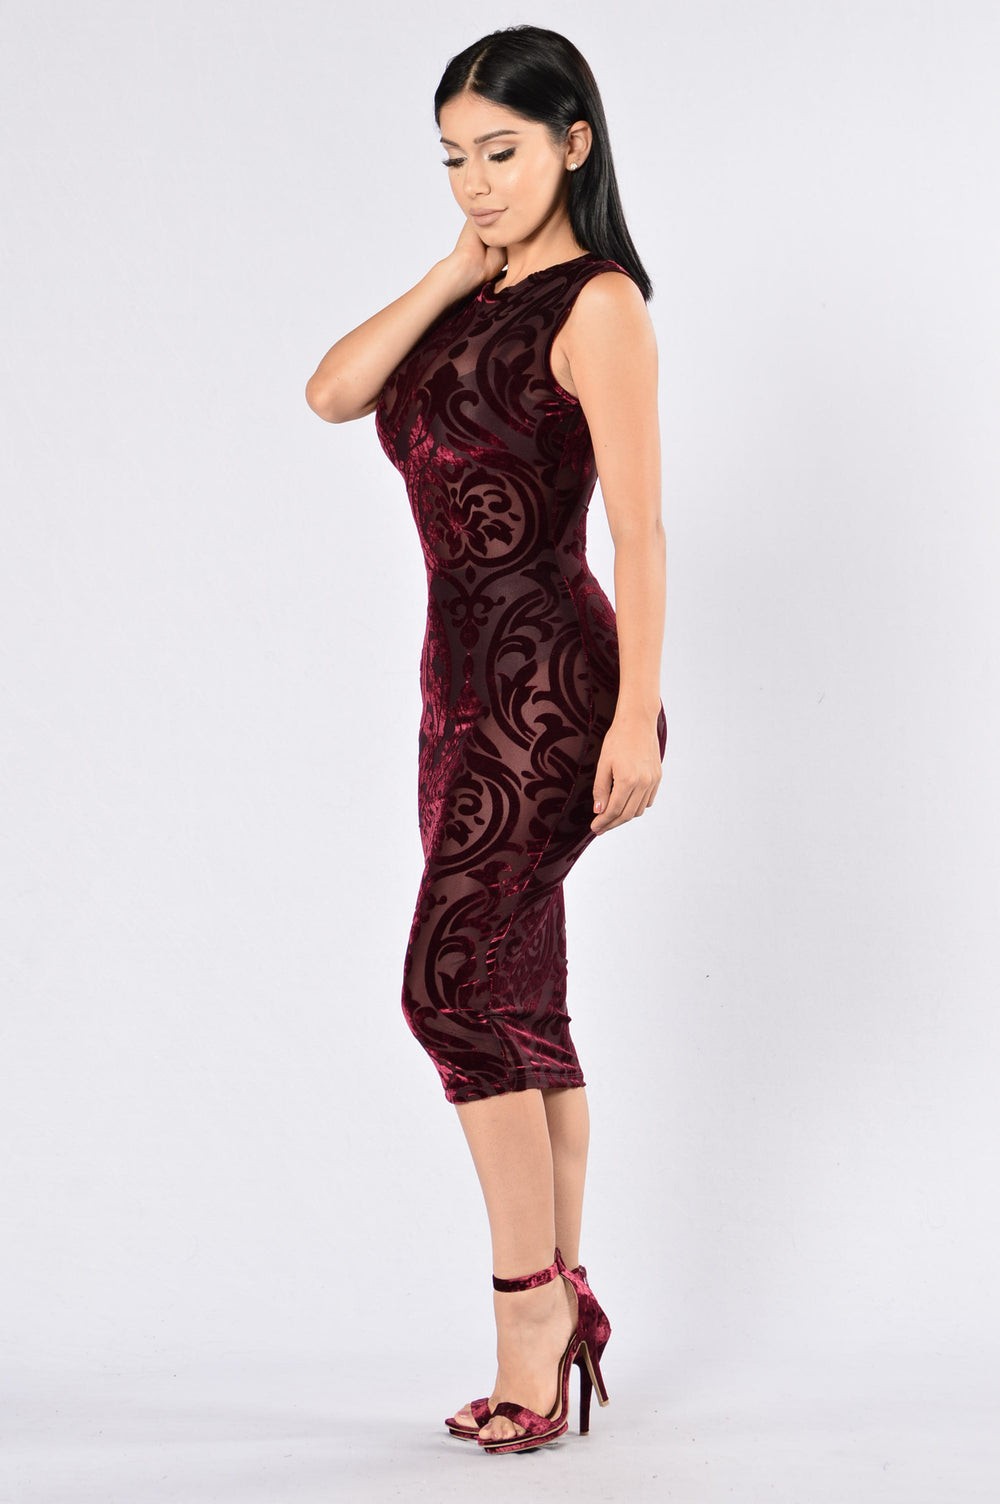 Feel You Close Dress - Burgundy